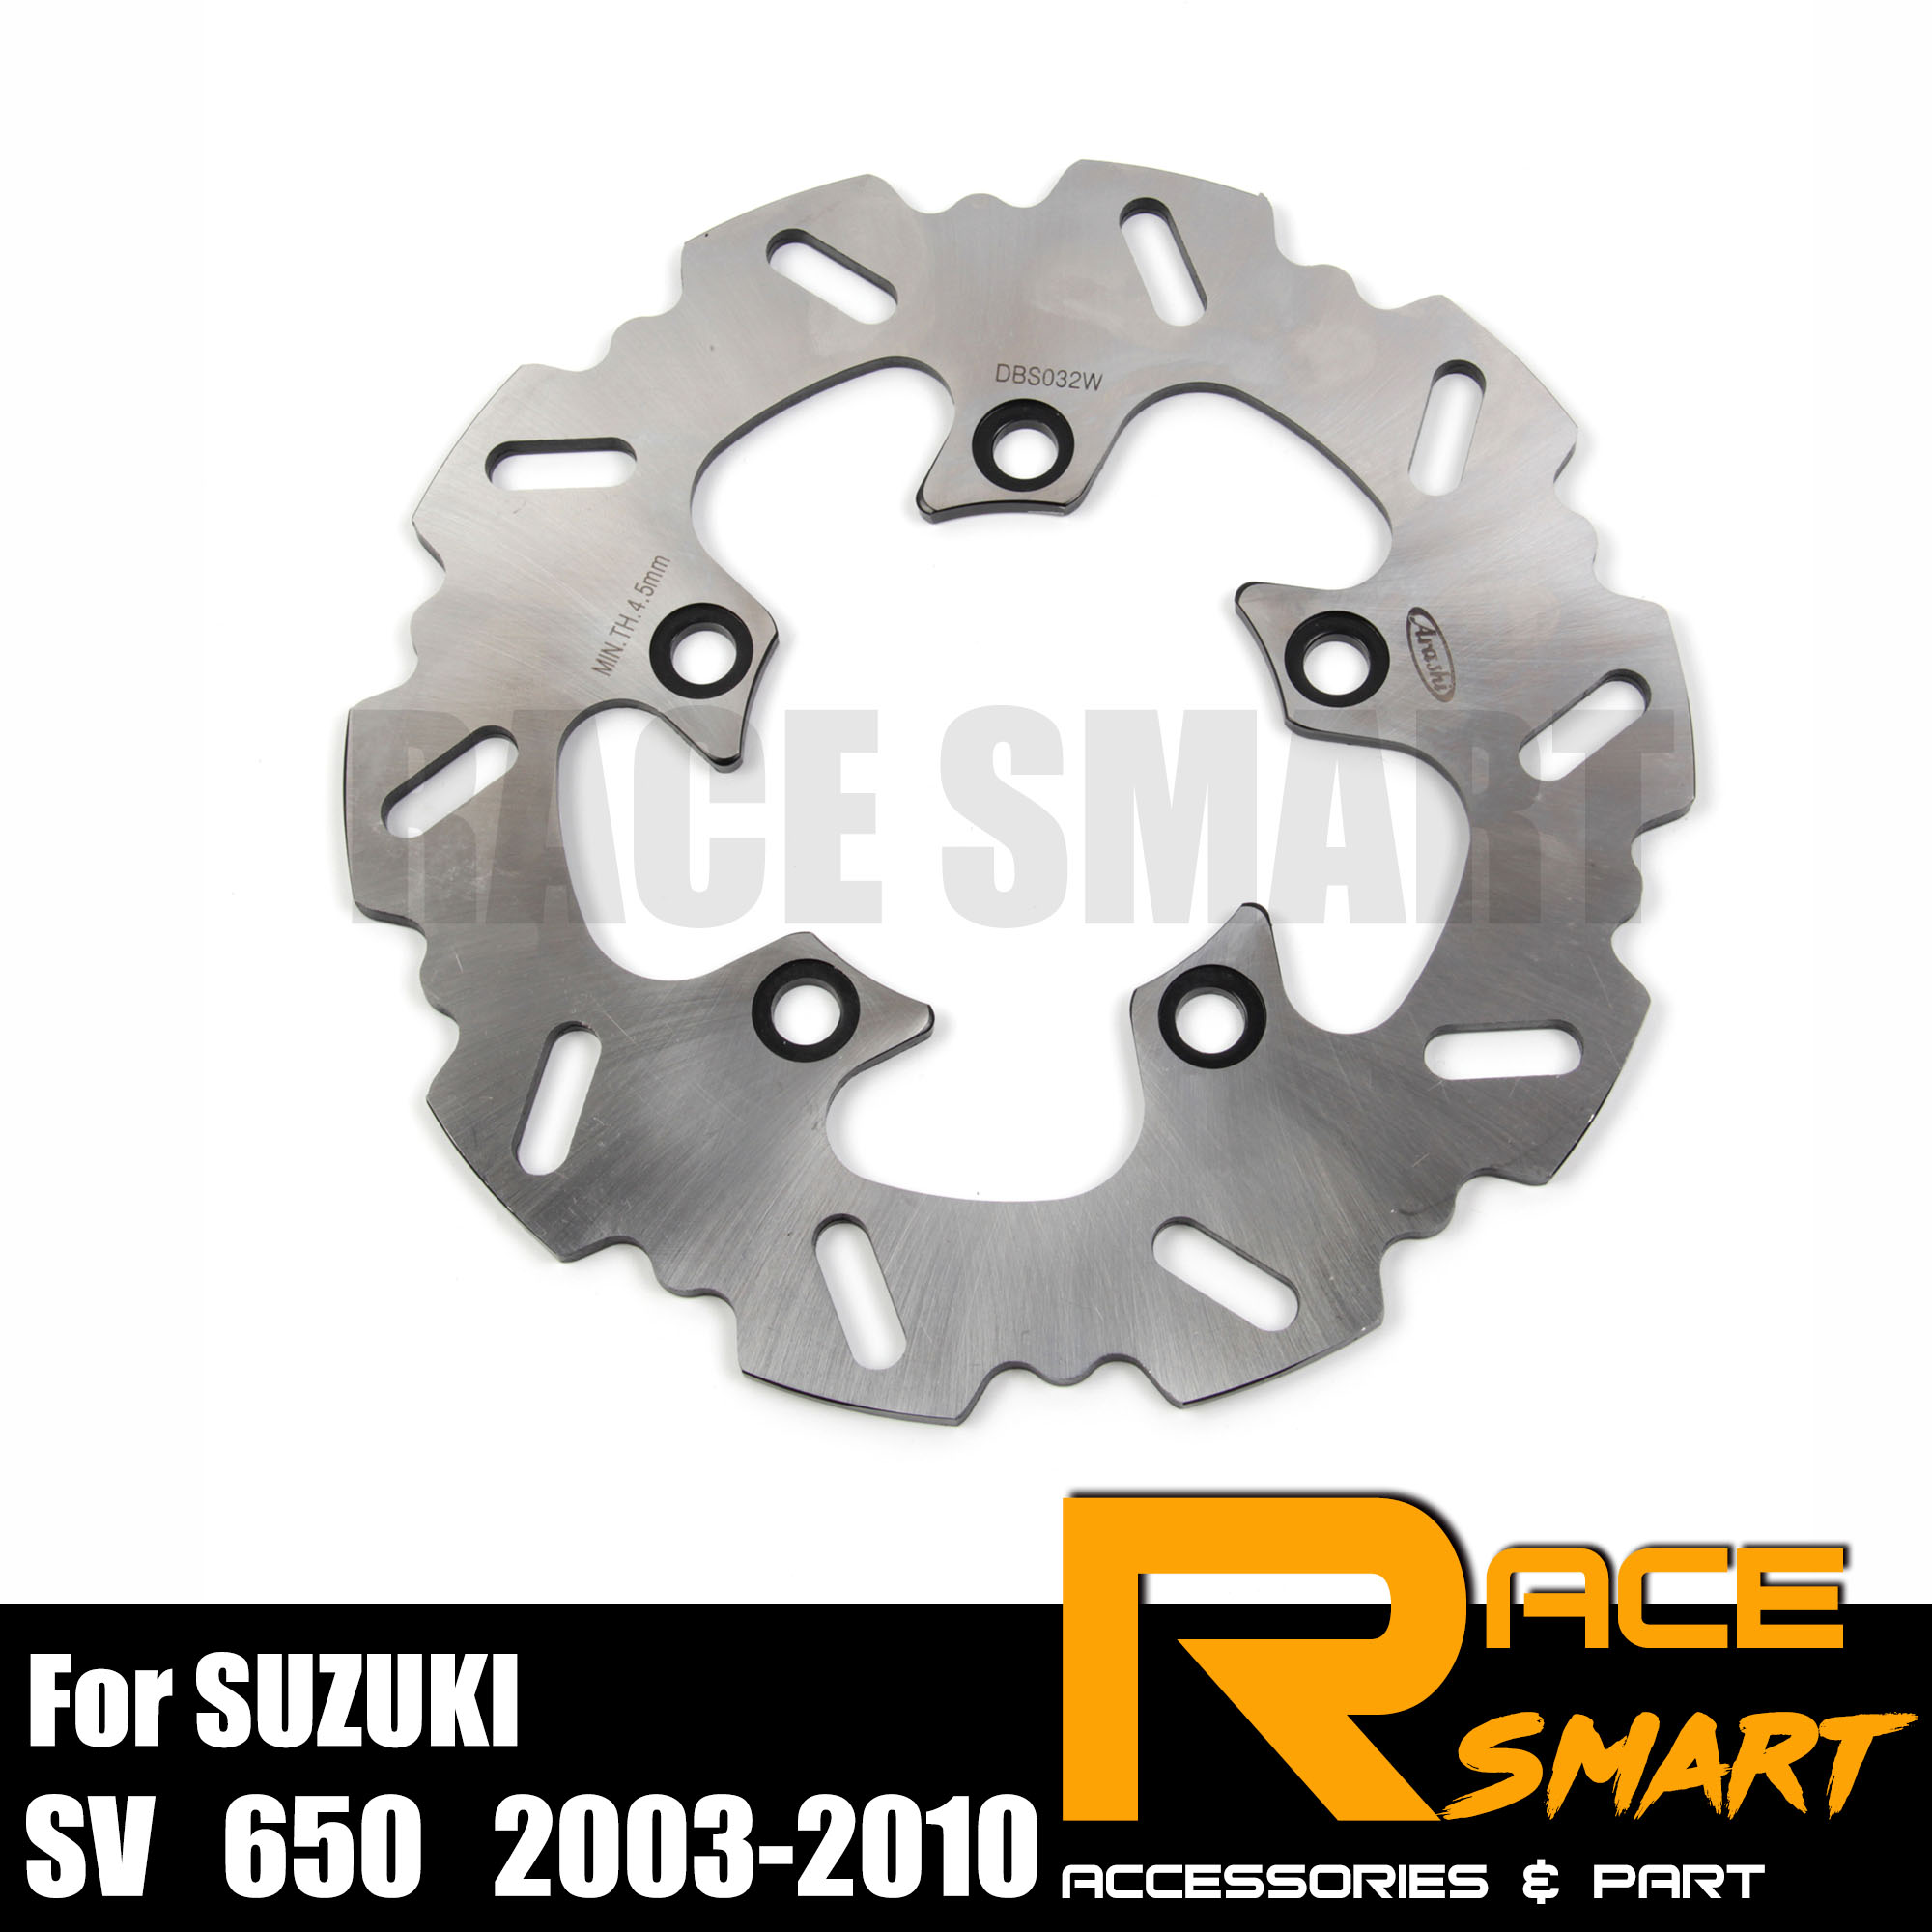 Motorcycle Rear Brake Discs For SUZUKI SV 650 2003 2010 Brake Disks Rotors SV S 650 2003 2009 SV650 SVS650 SV S650 2007 2008